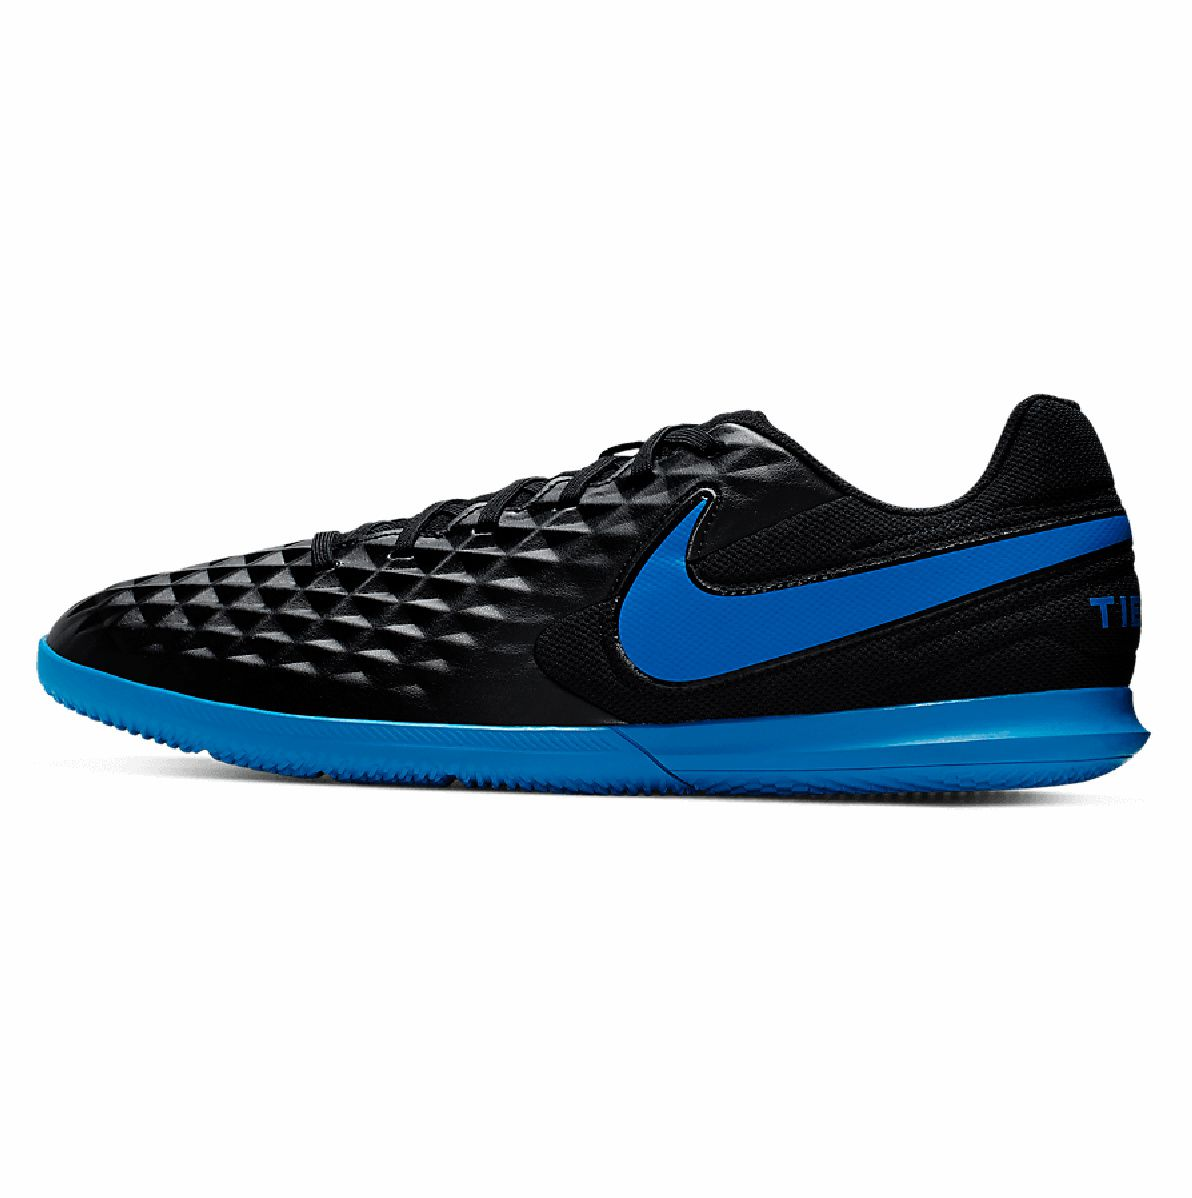 Tenis Nike Tiempo Legend 8 Club IC Chuteira Futsal AT6110-004